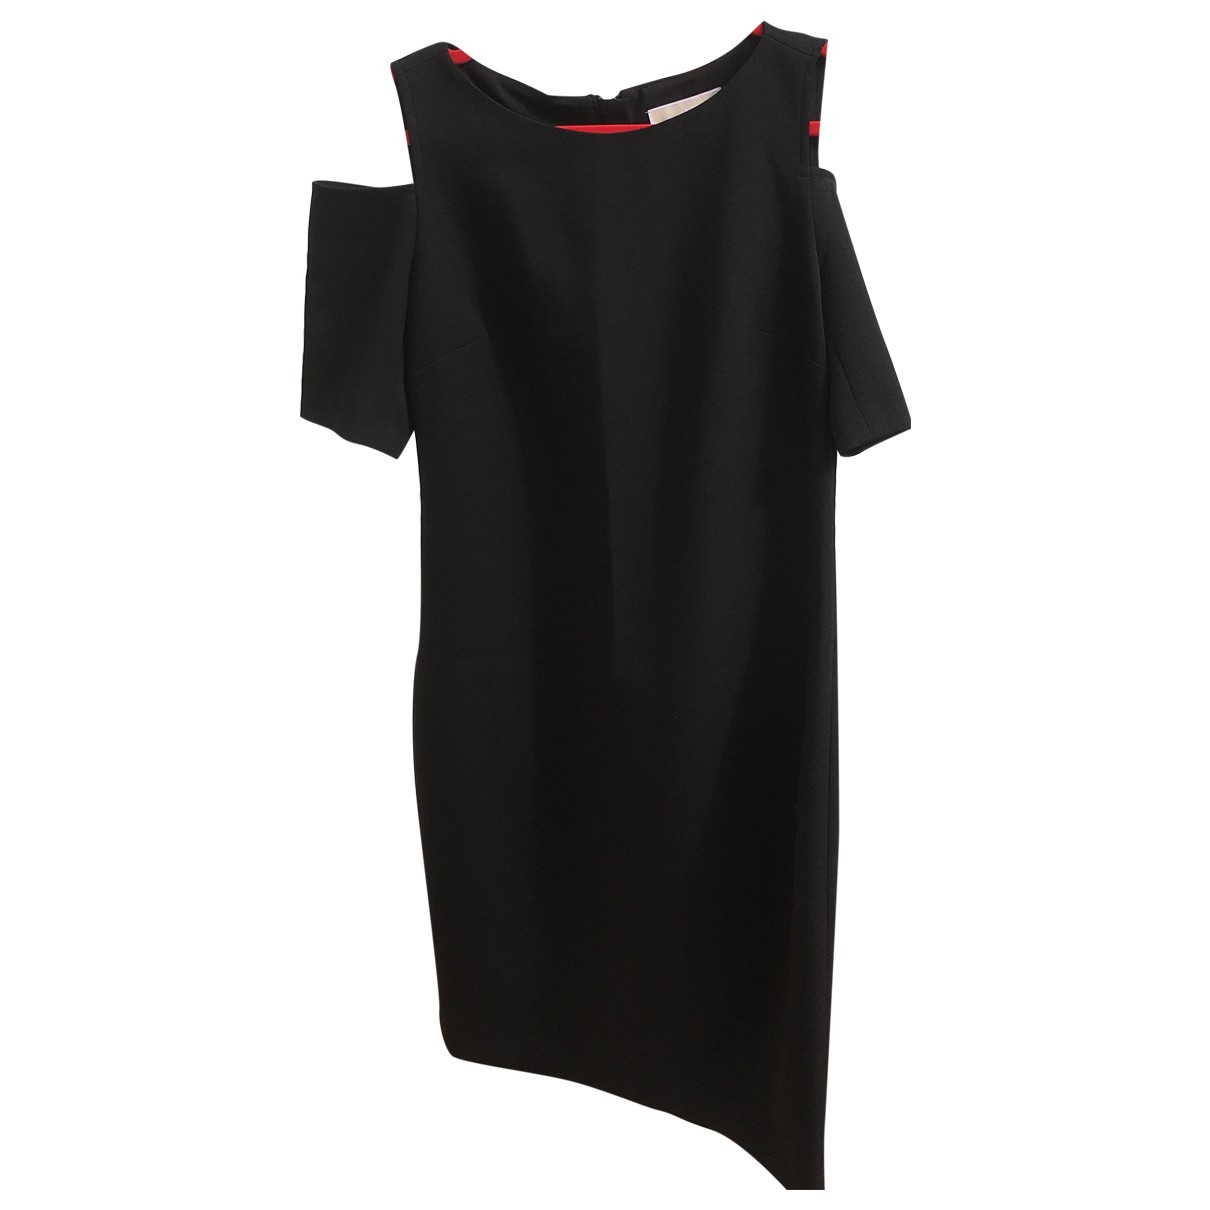 Michael Kors N Black dress for Women 40 FR